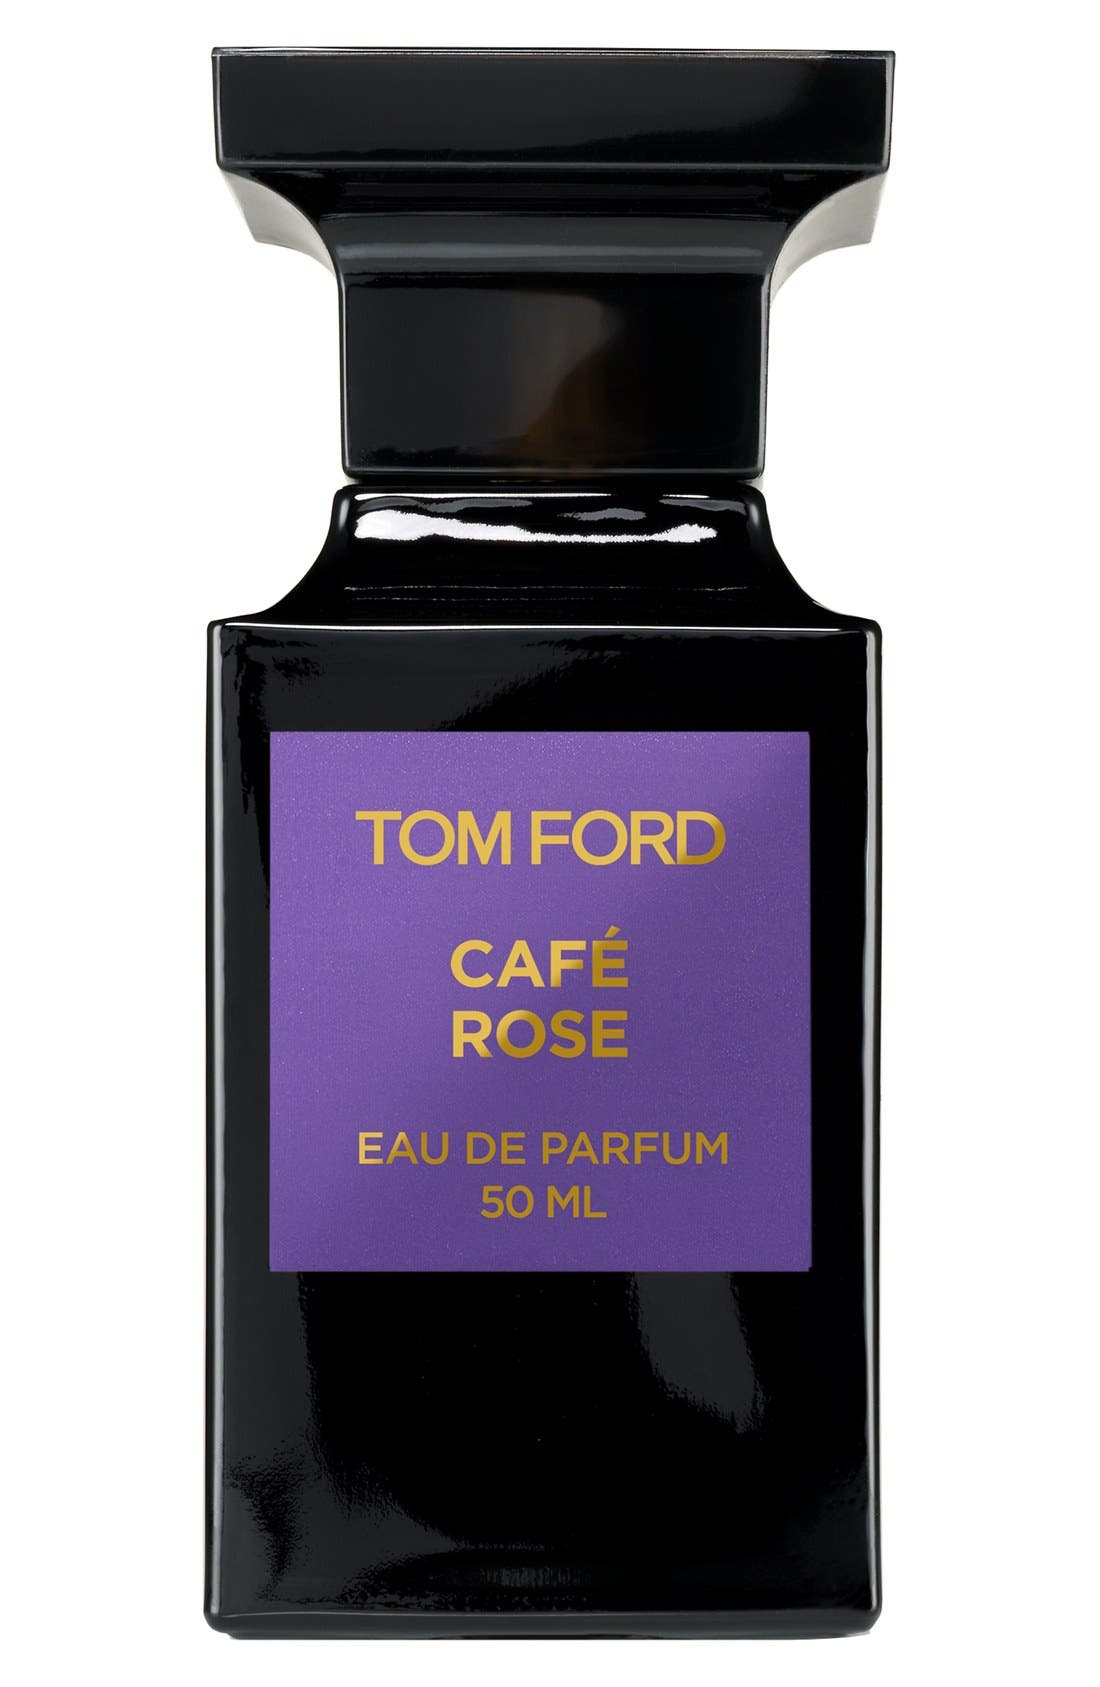 Tom Ford Private Blend Café Rose Eau de Parfum